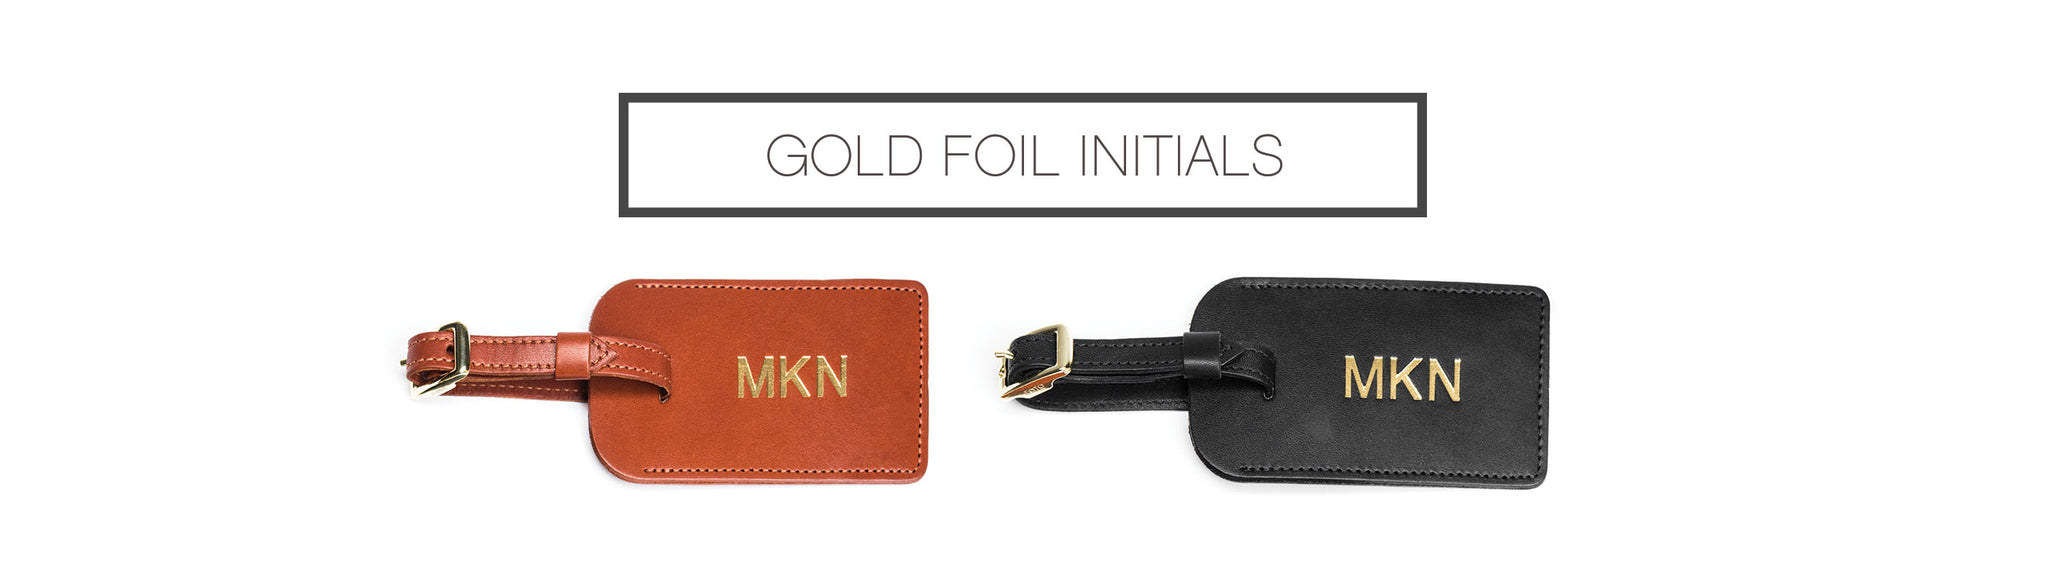 Gold Foil Intials - FOTO Luggage Tag